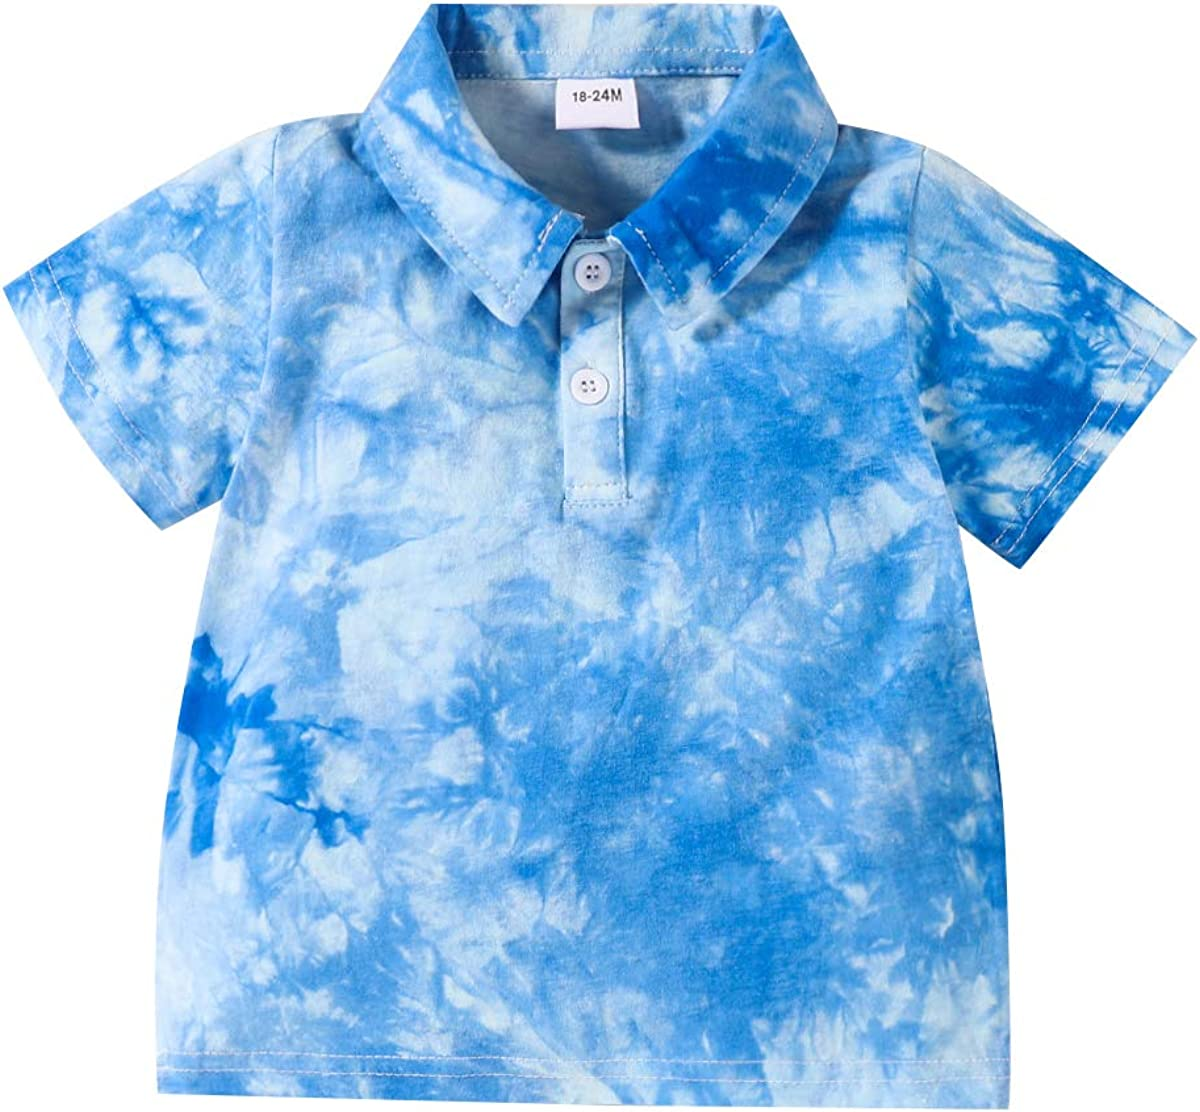 GOOCHEER Toddler Baby Boy T-Shirt Short Sleeve Polo Shirt Stand Collar Tie Dye Tops Tees Summer Casual Outfits Clothes